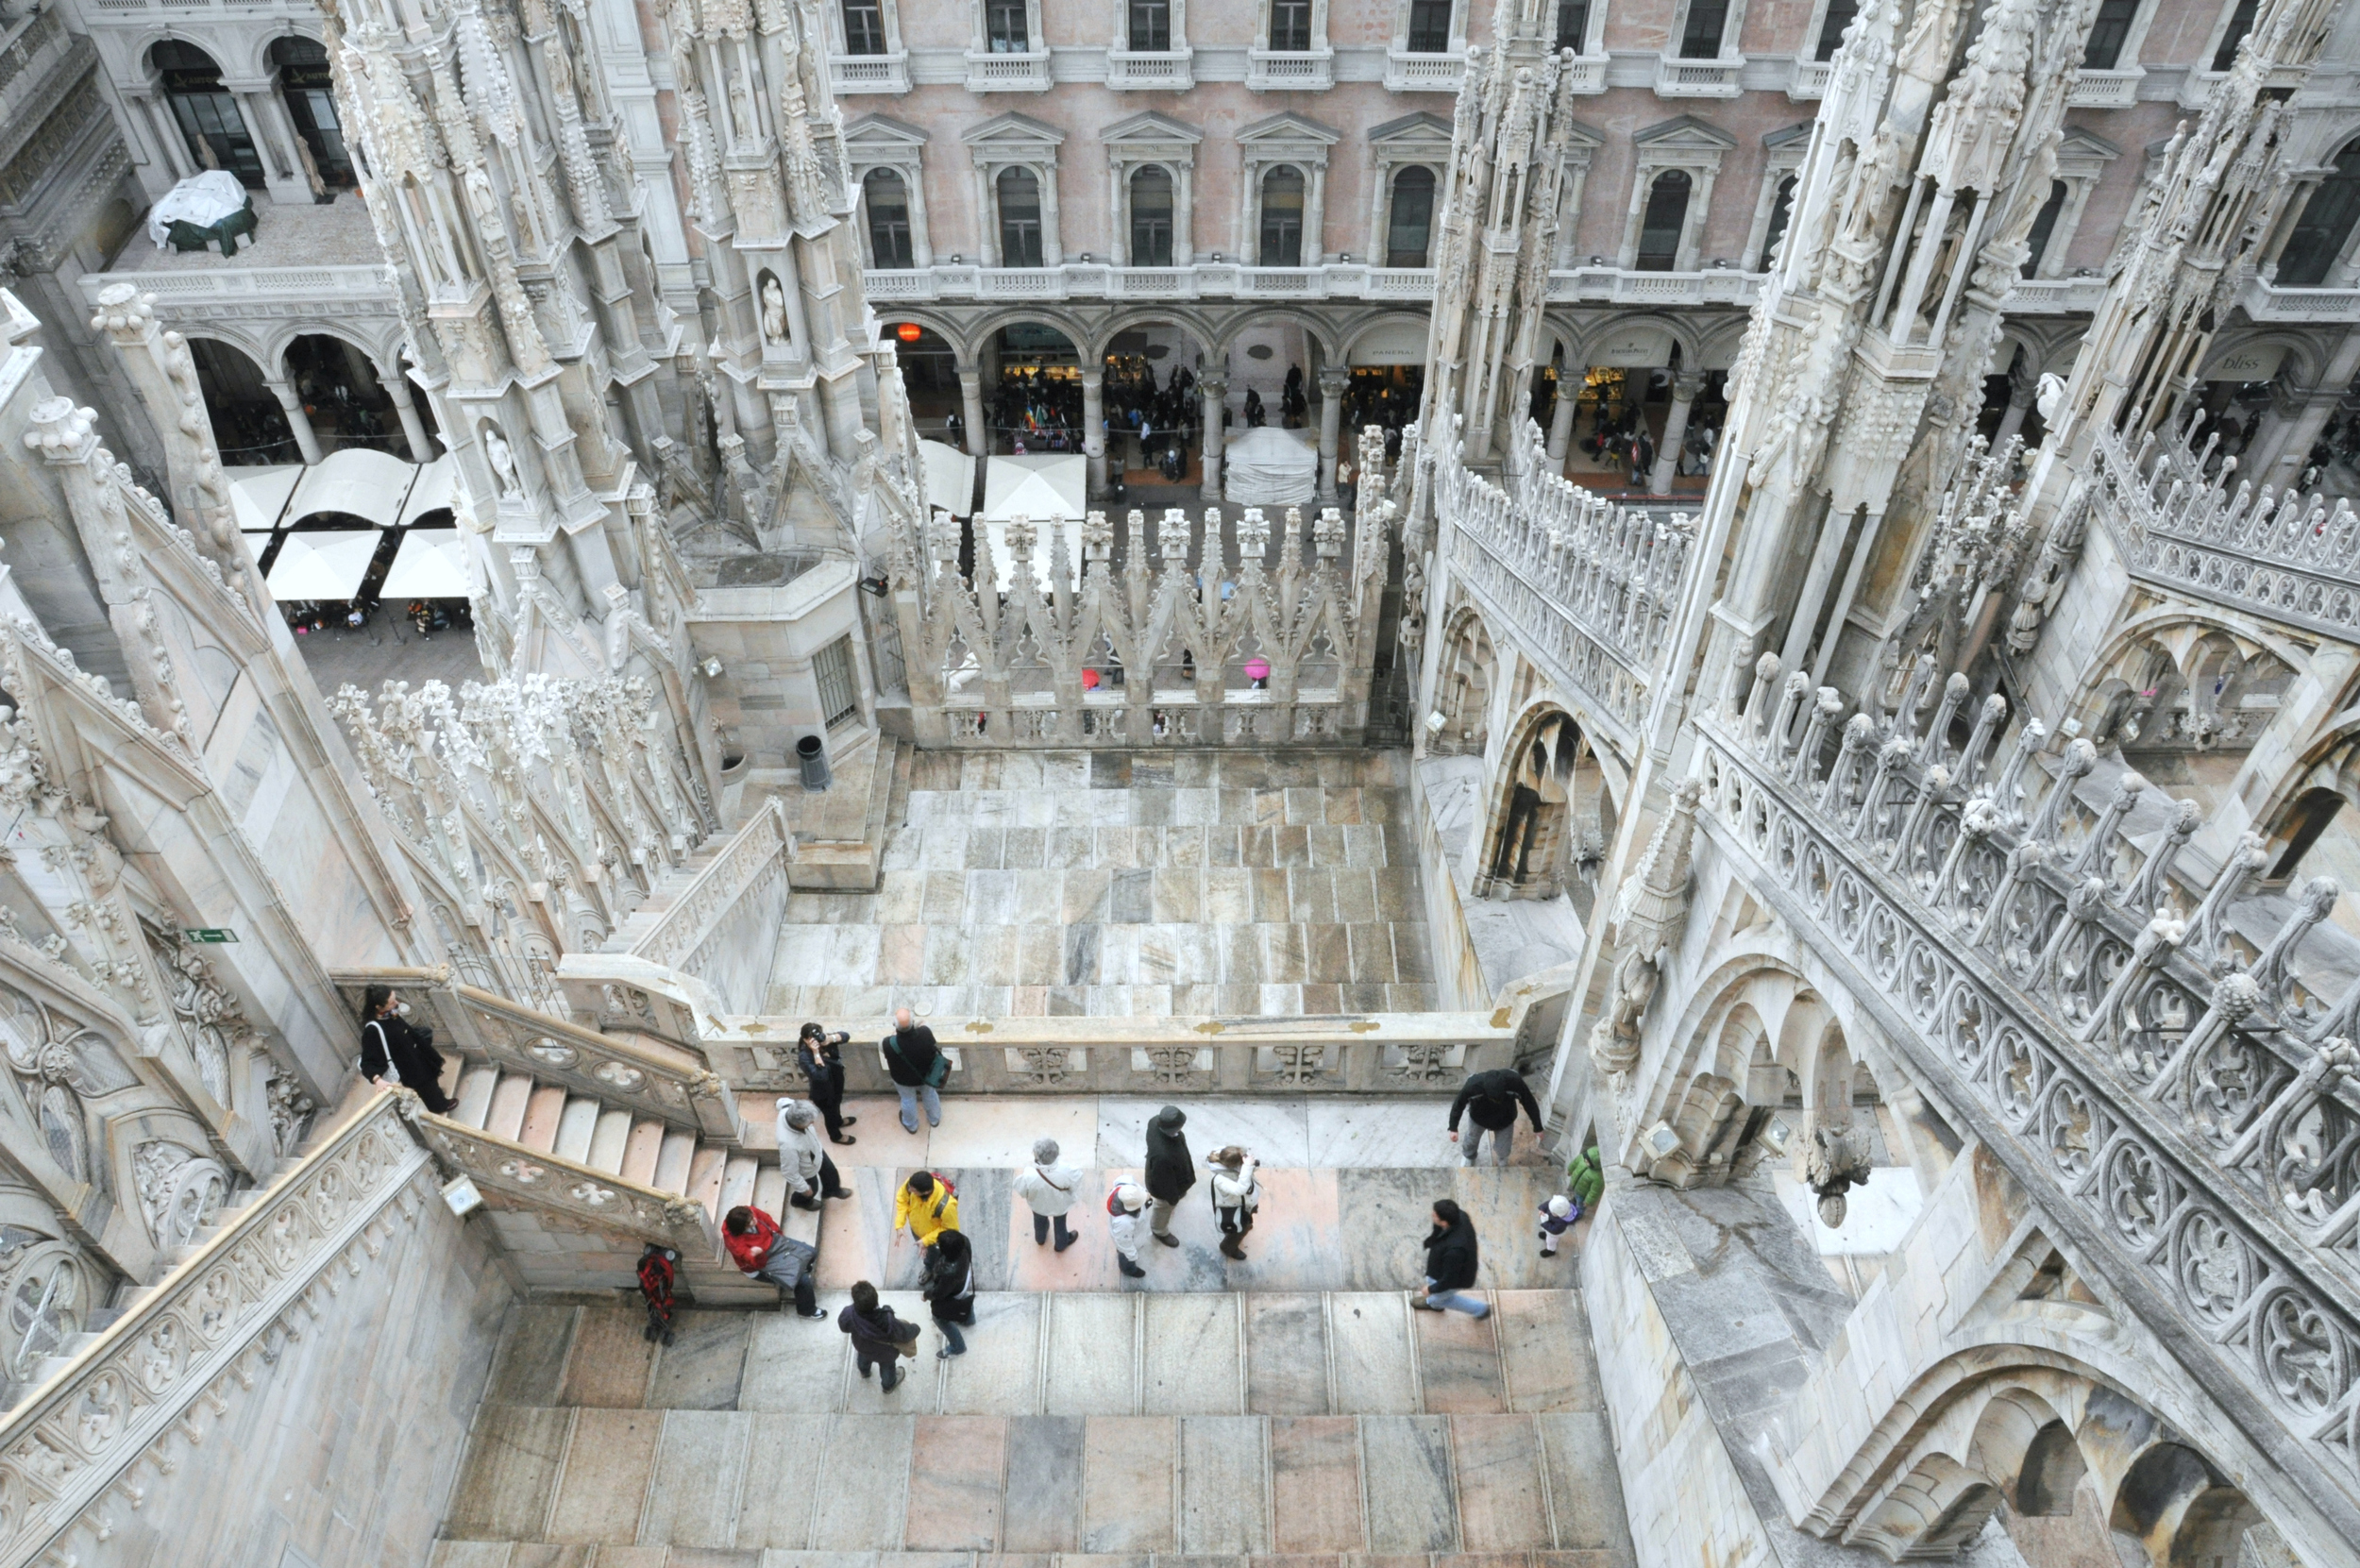 Roof of the Duomo